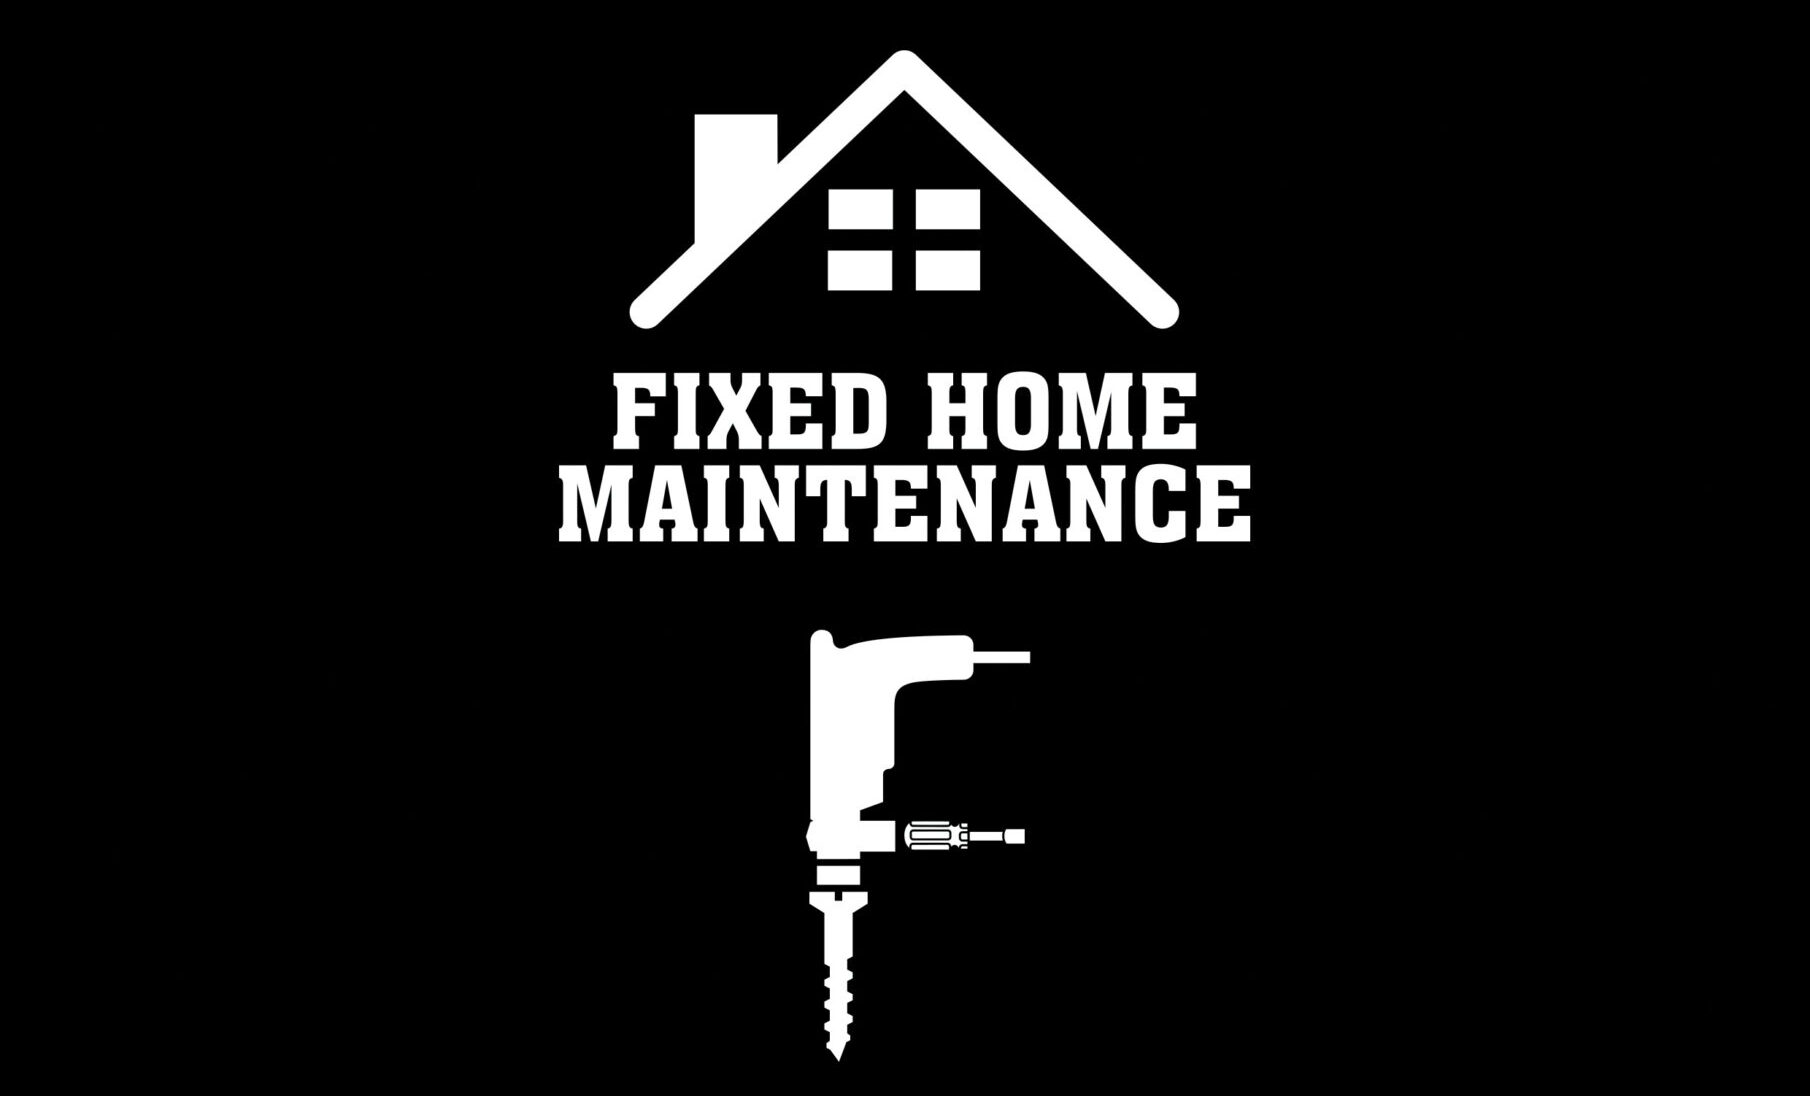 Fixed Home Maintenance